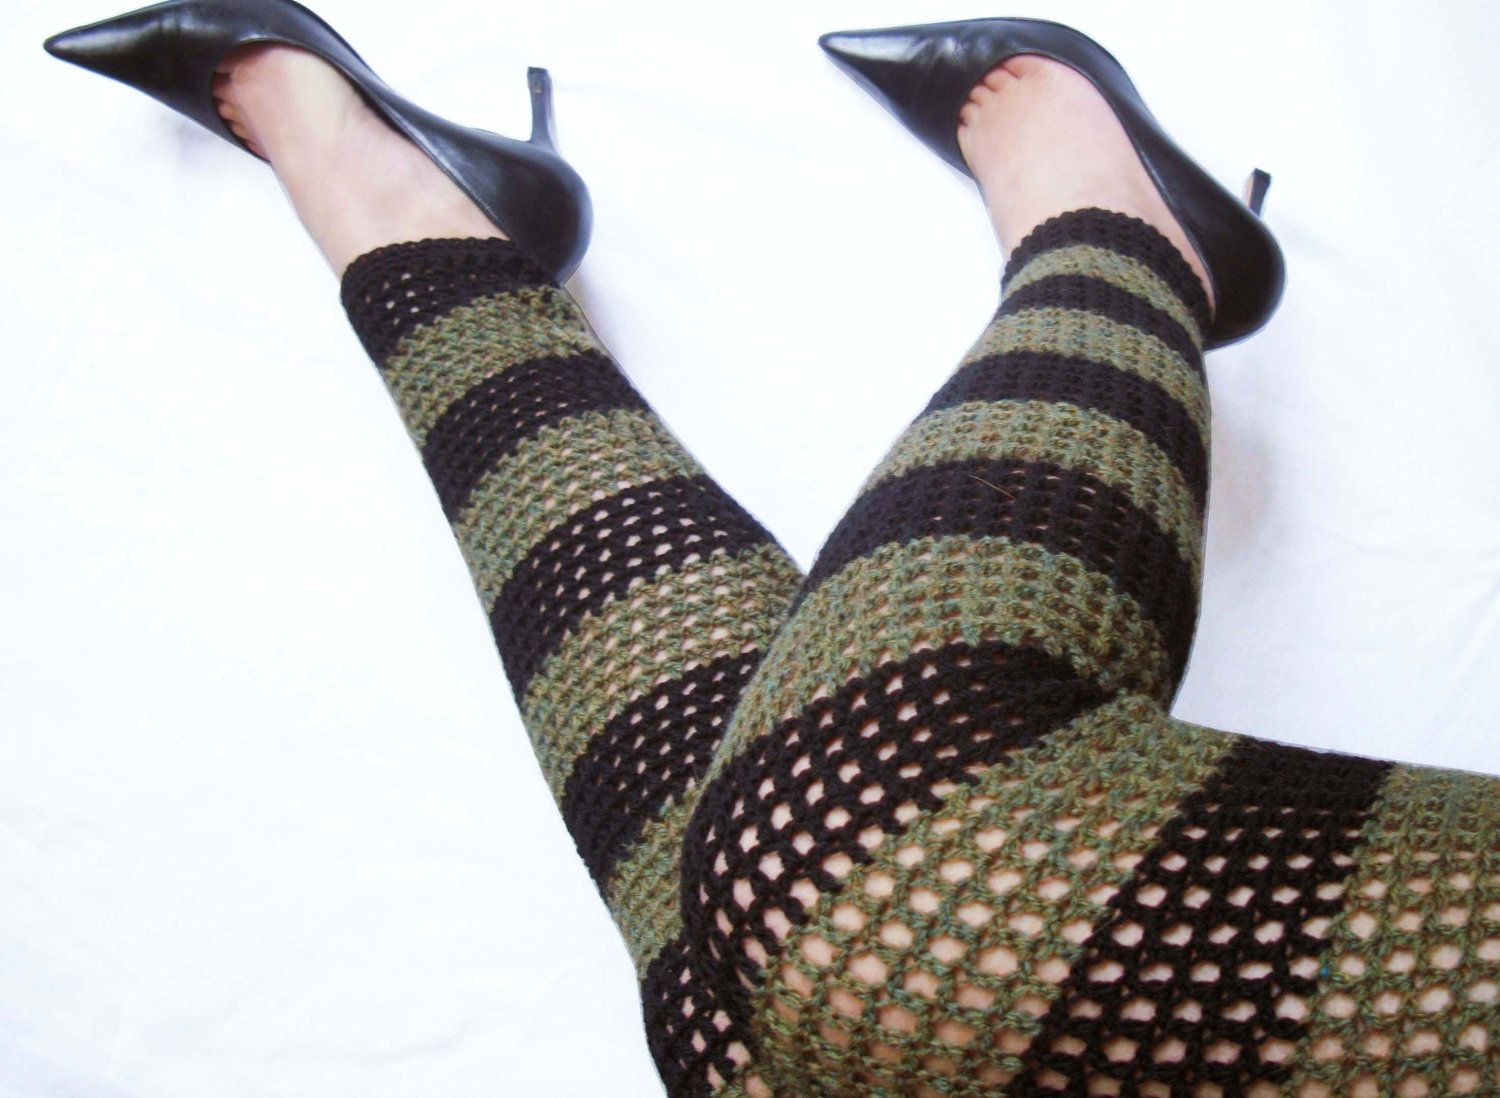 Mad hatter wool crochet leggings size large olive black mad hatter wool crochet leggings size large olive black stripes footless tights bankloansurffo Image collections